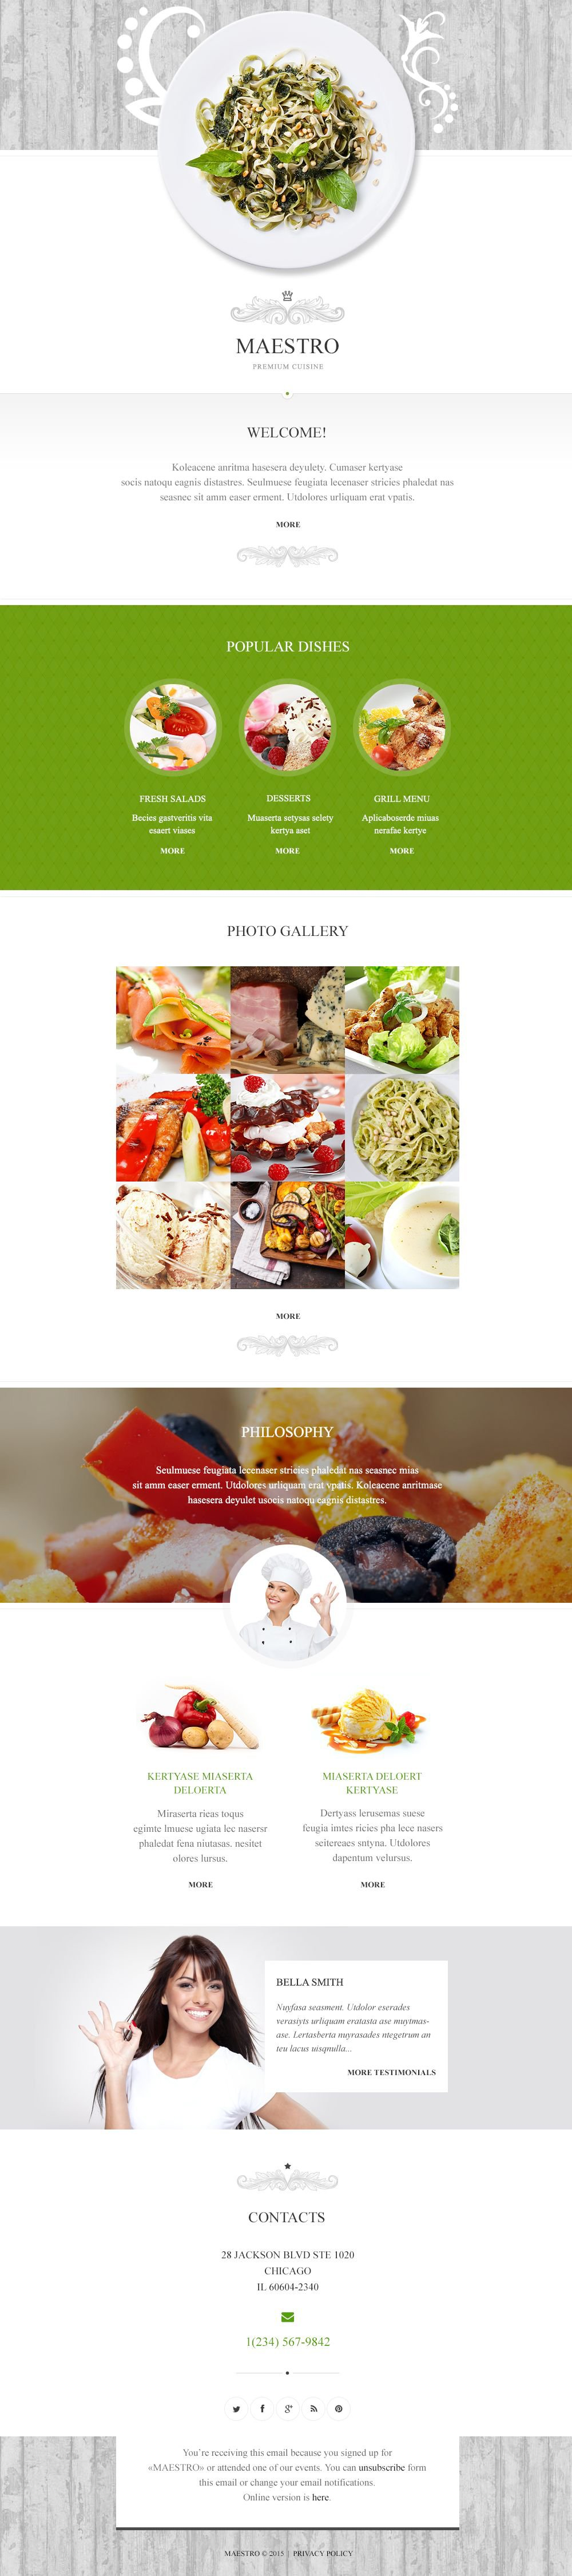 Cafe and Restaurant Responsive Newsletter Template - screenshot